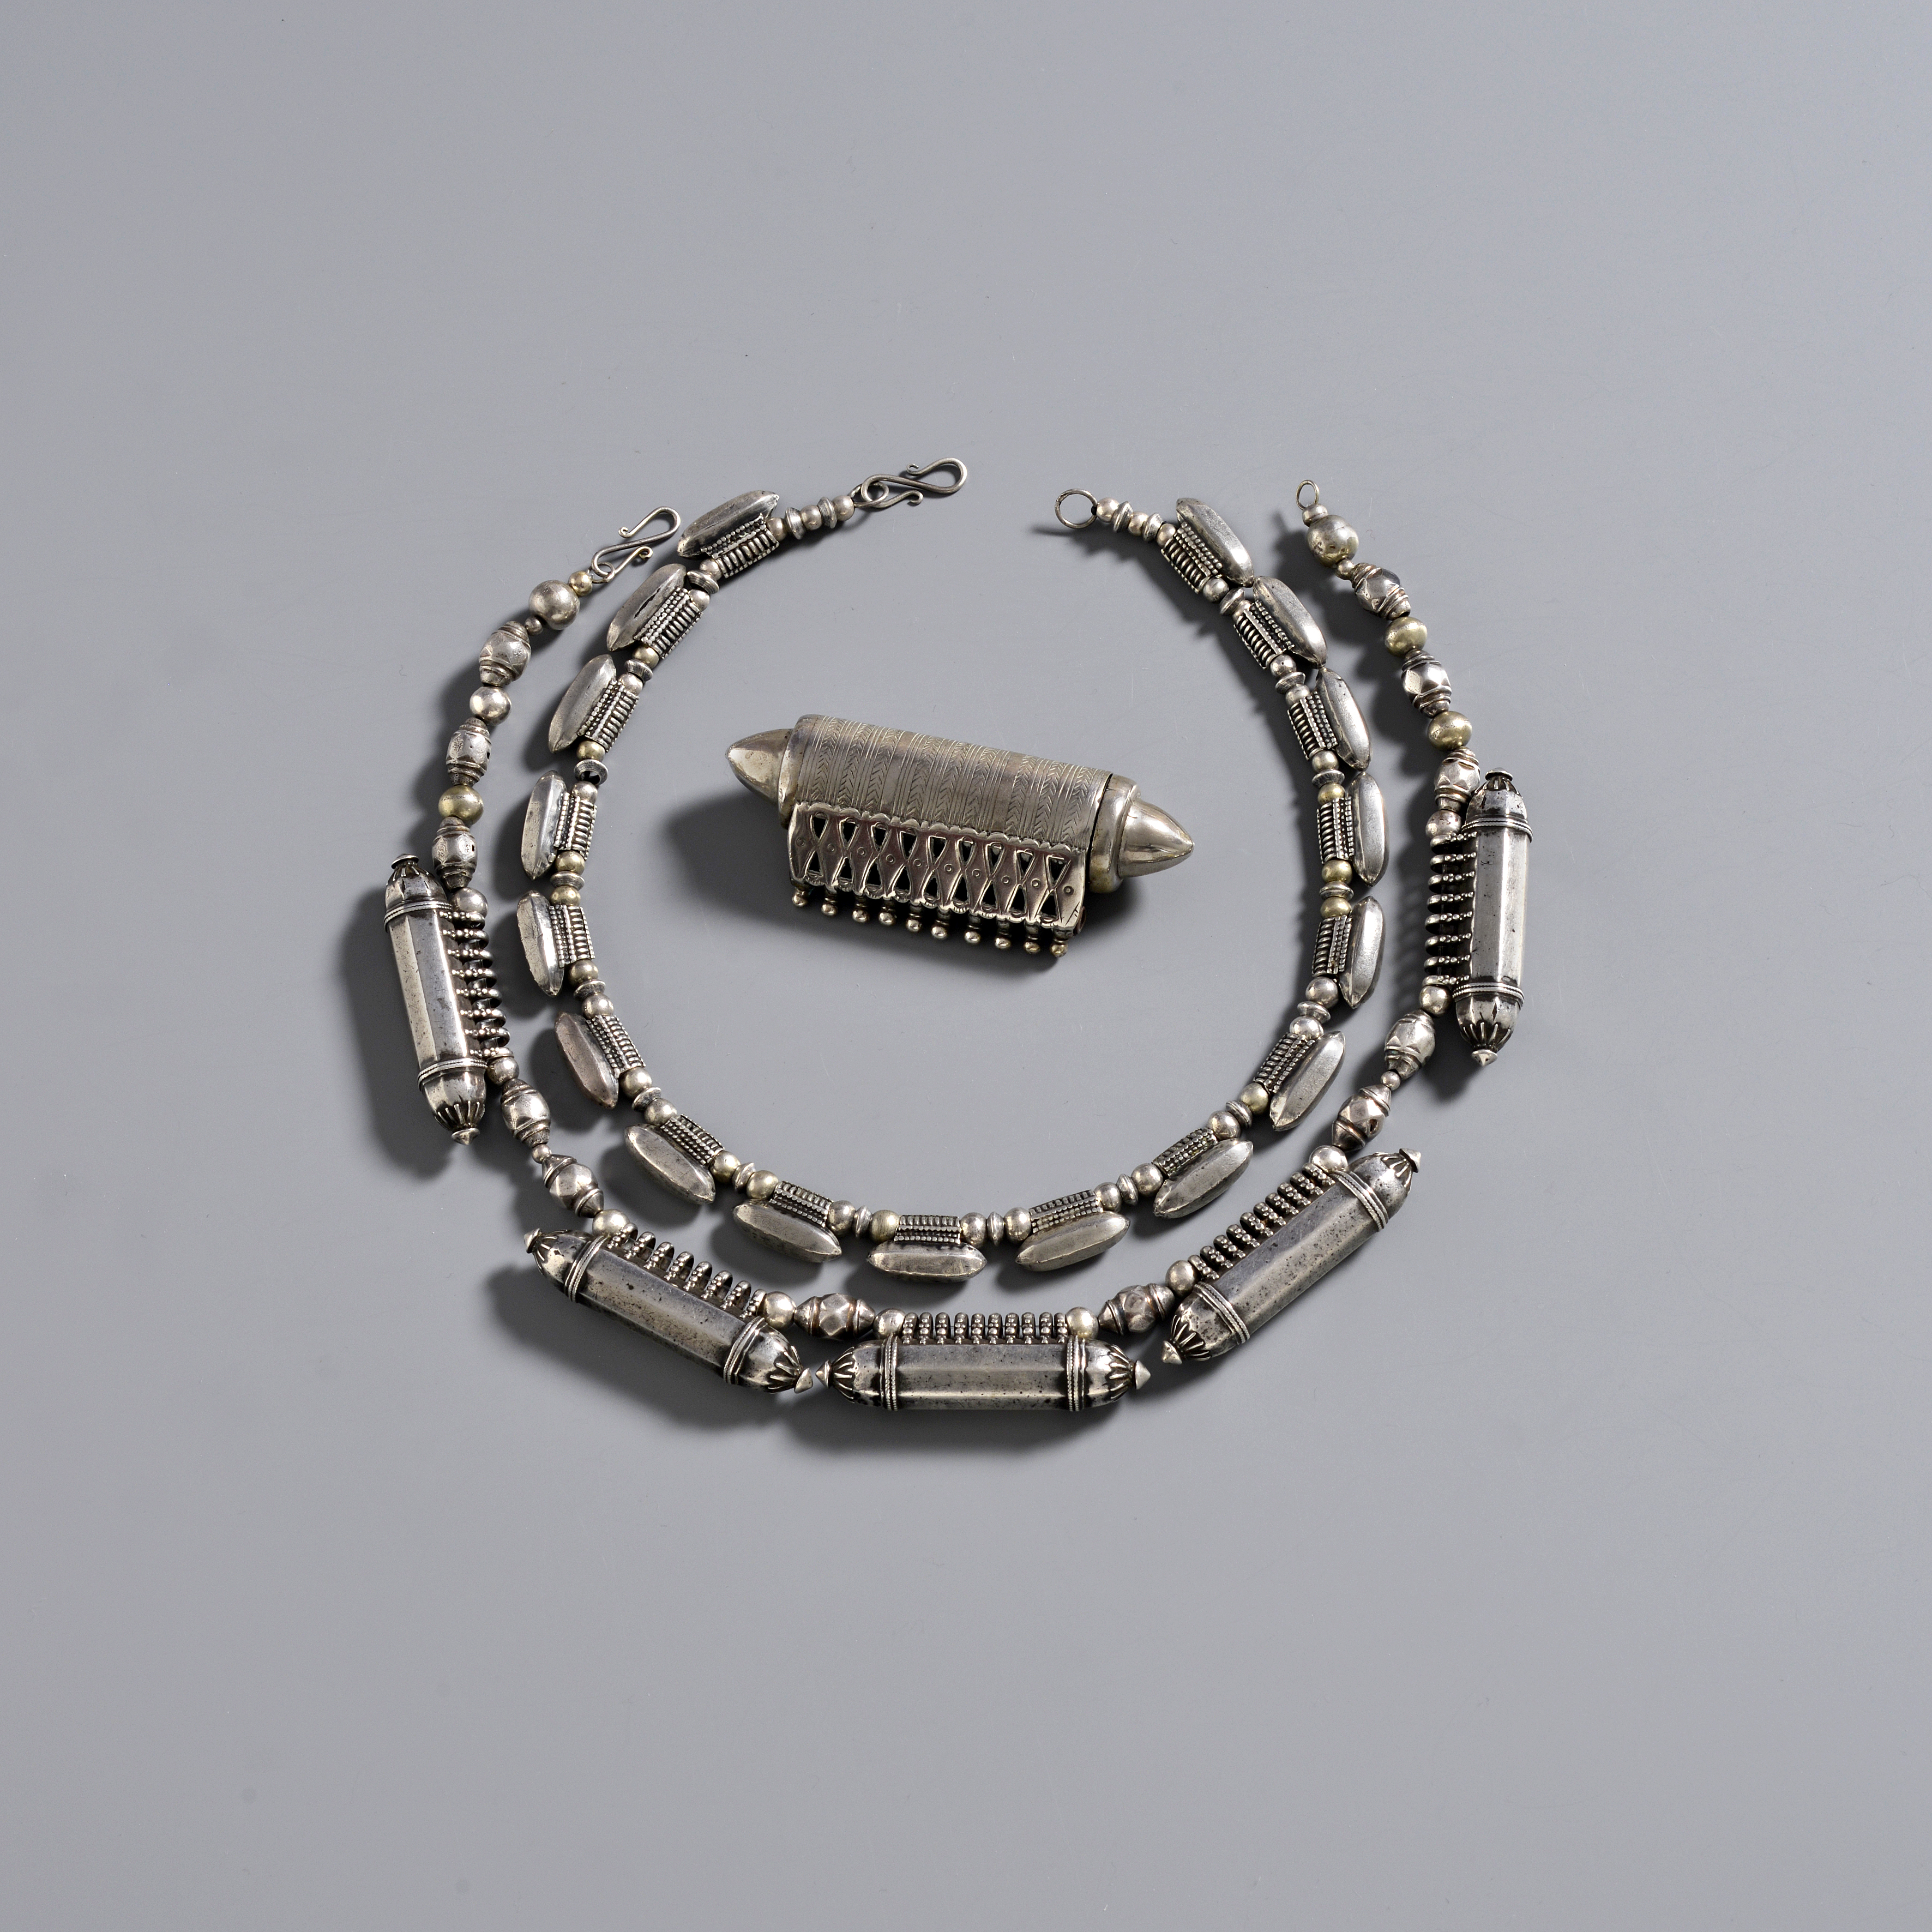 322. India, silver amulets.